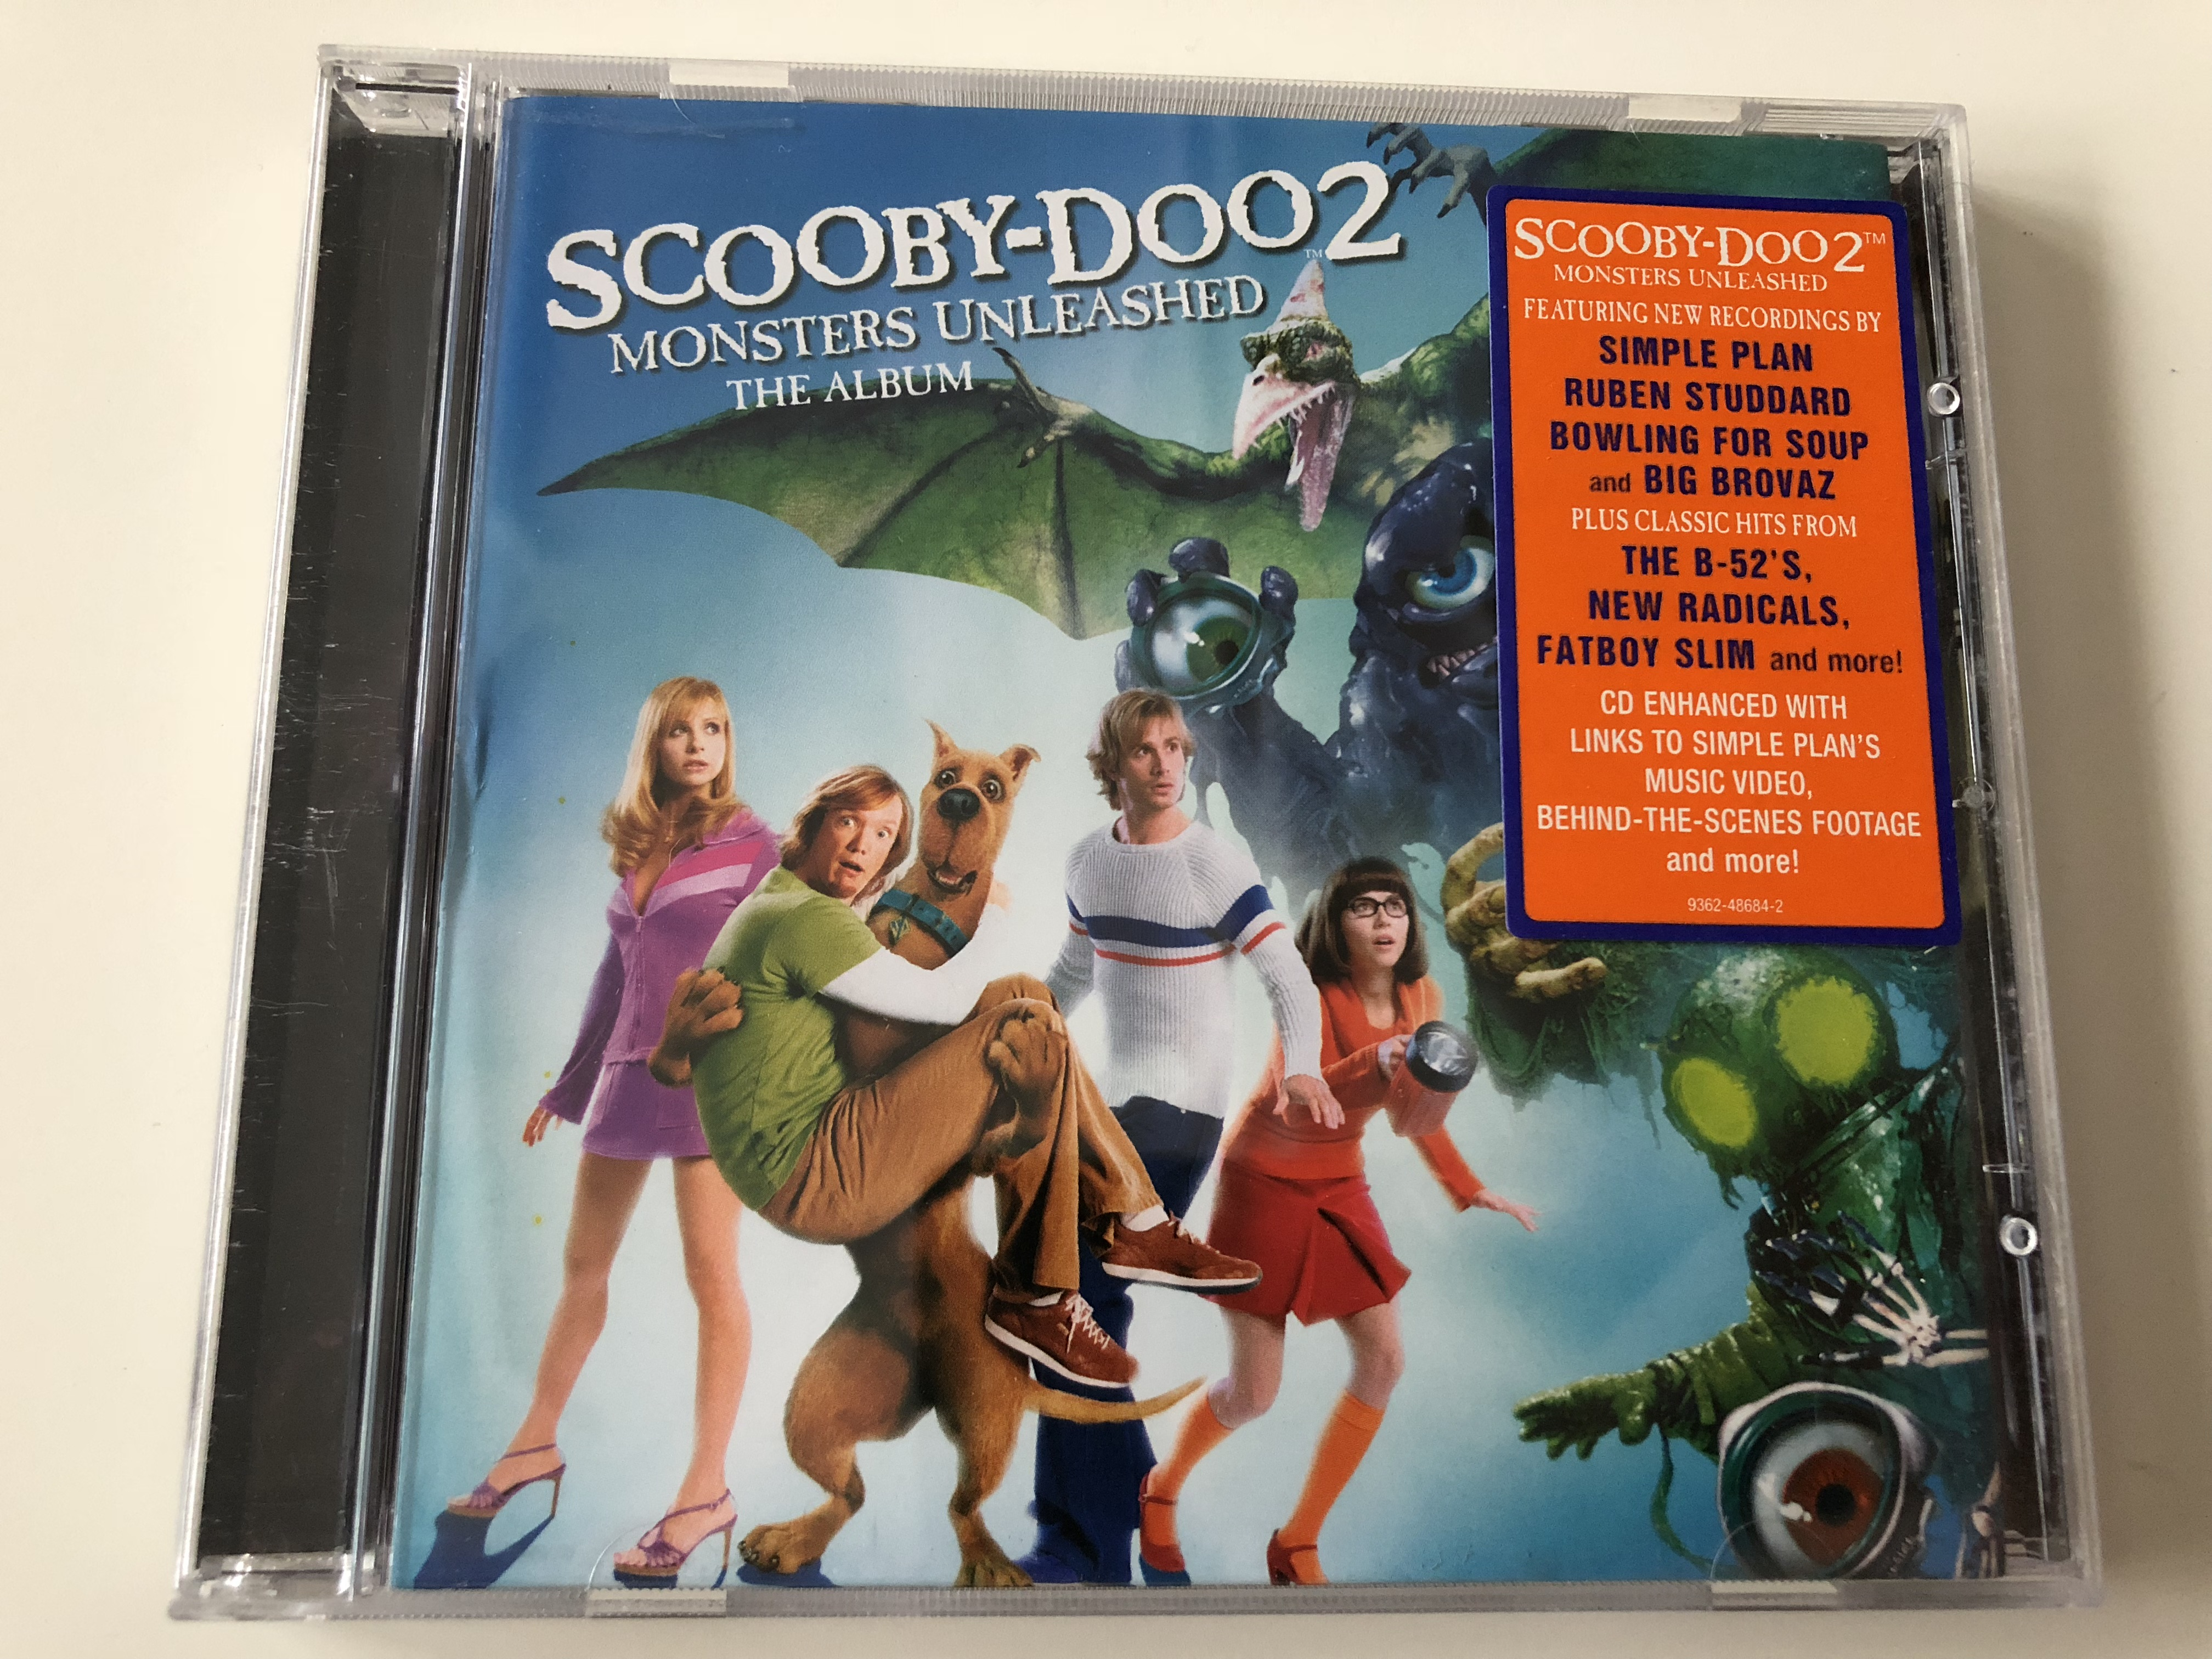 Scooby Doo 2 Monsters Unleashed The Album Motion Picture Soundtrack Audio Cd 2004 Simple Plan Ruben Studdard Bowling For Soup Big Brovaz Pluss Classic Hits From The B 52 S